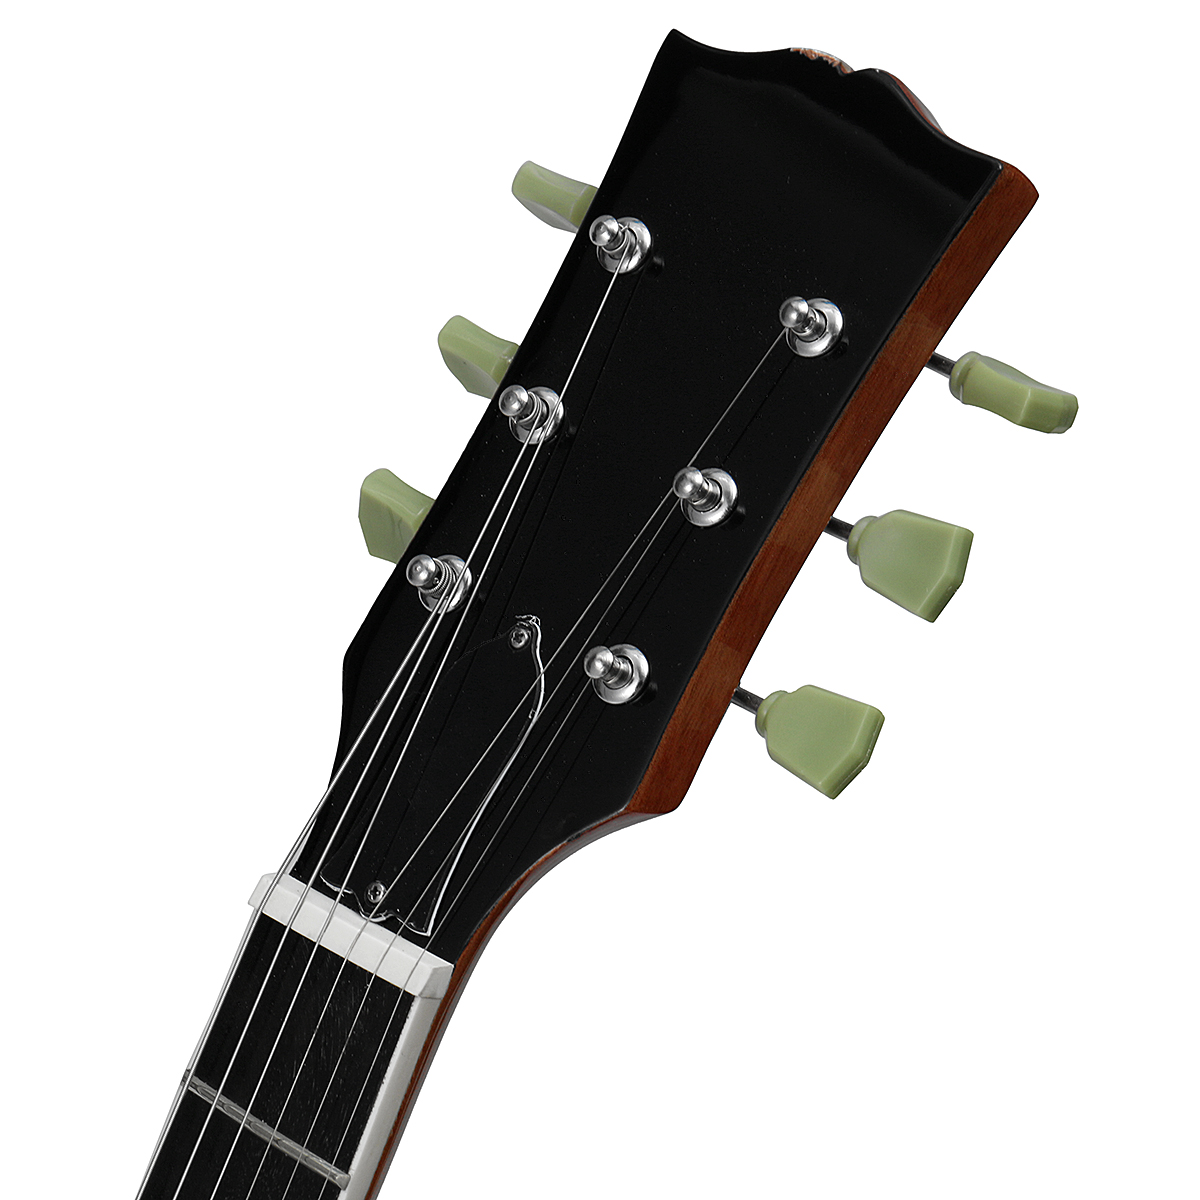 22 Frets 4 Types LP Style Electric Guitar Solid Mahogany Wood Body Flamed Maple Top Music Instrument